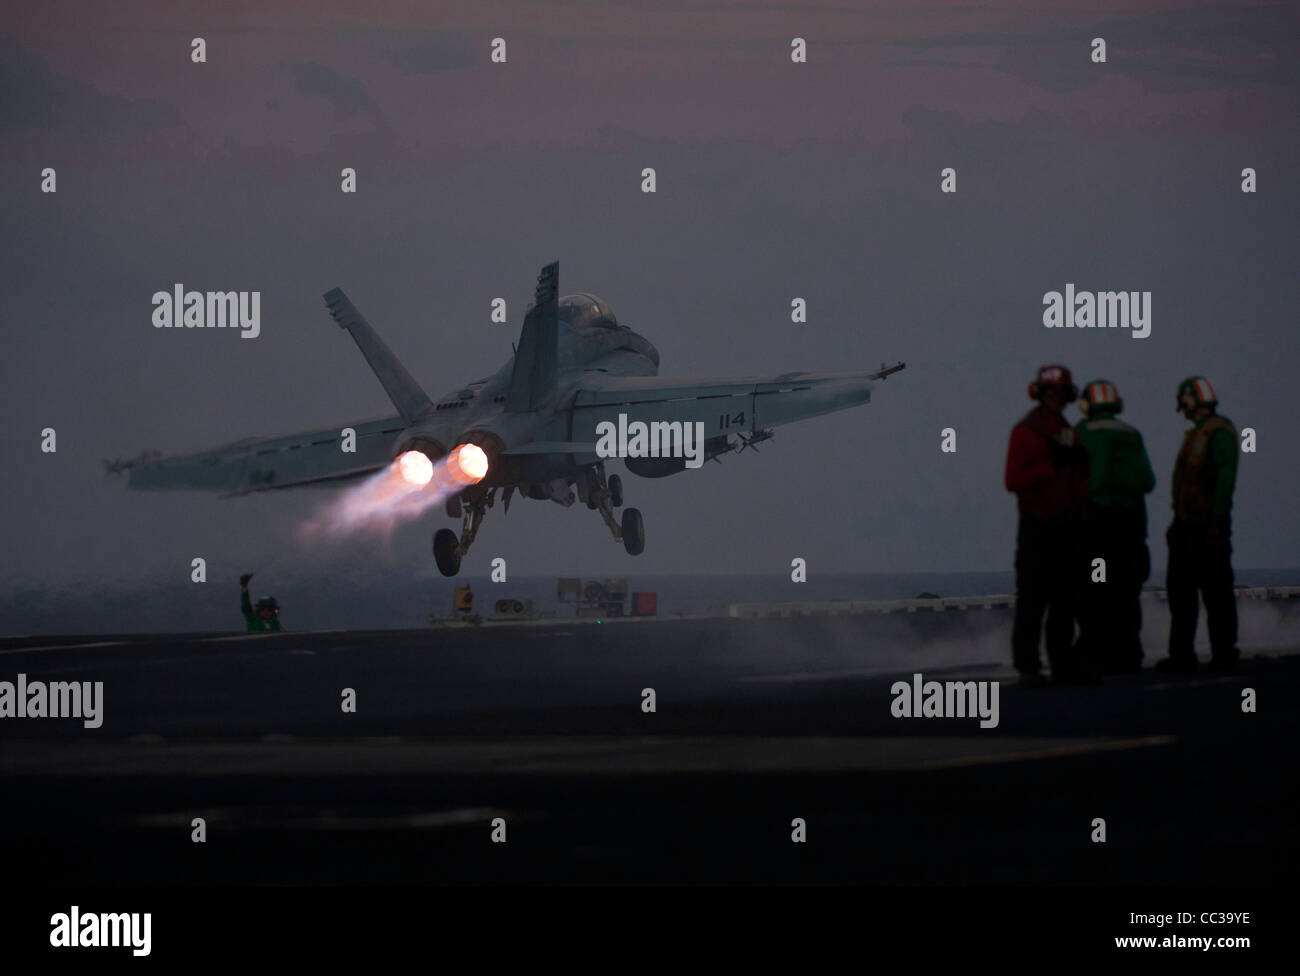 A F/A-18F Super Hornet launches from the flight deck of the Nimitz-class aircraft carrier USS Carl Vinson. Stock Photo